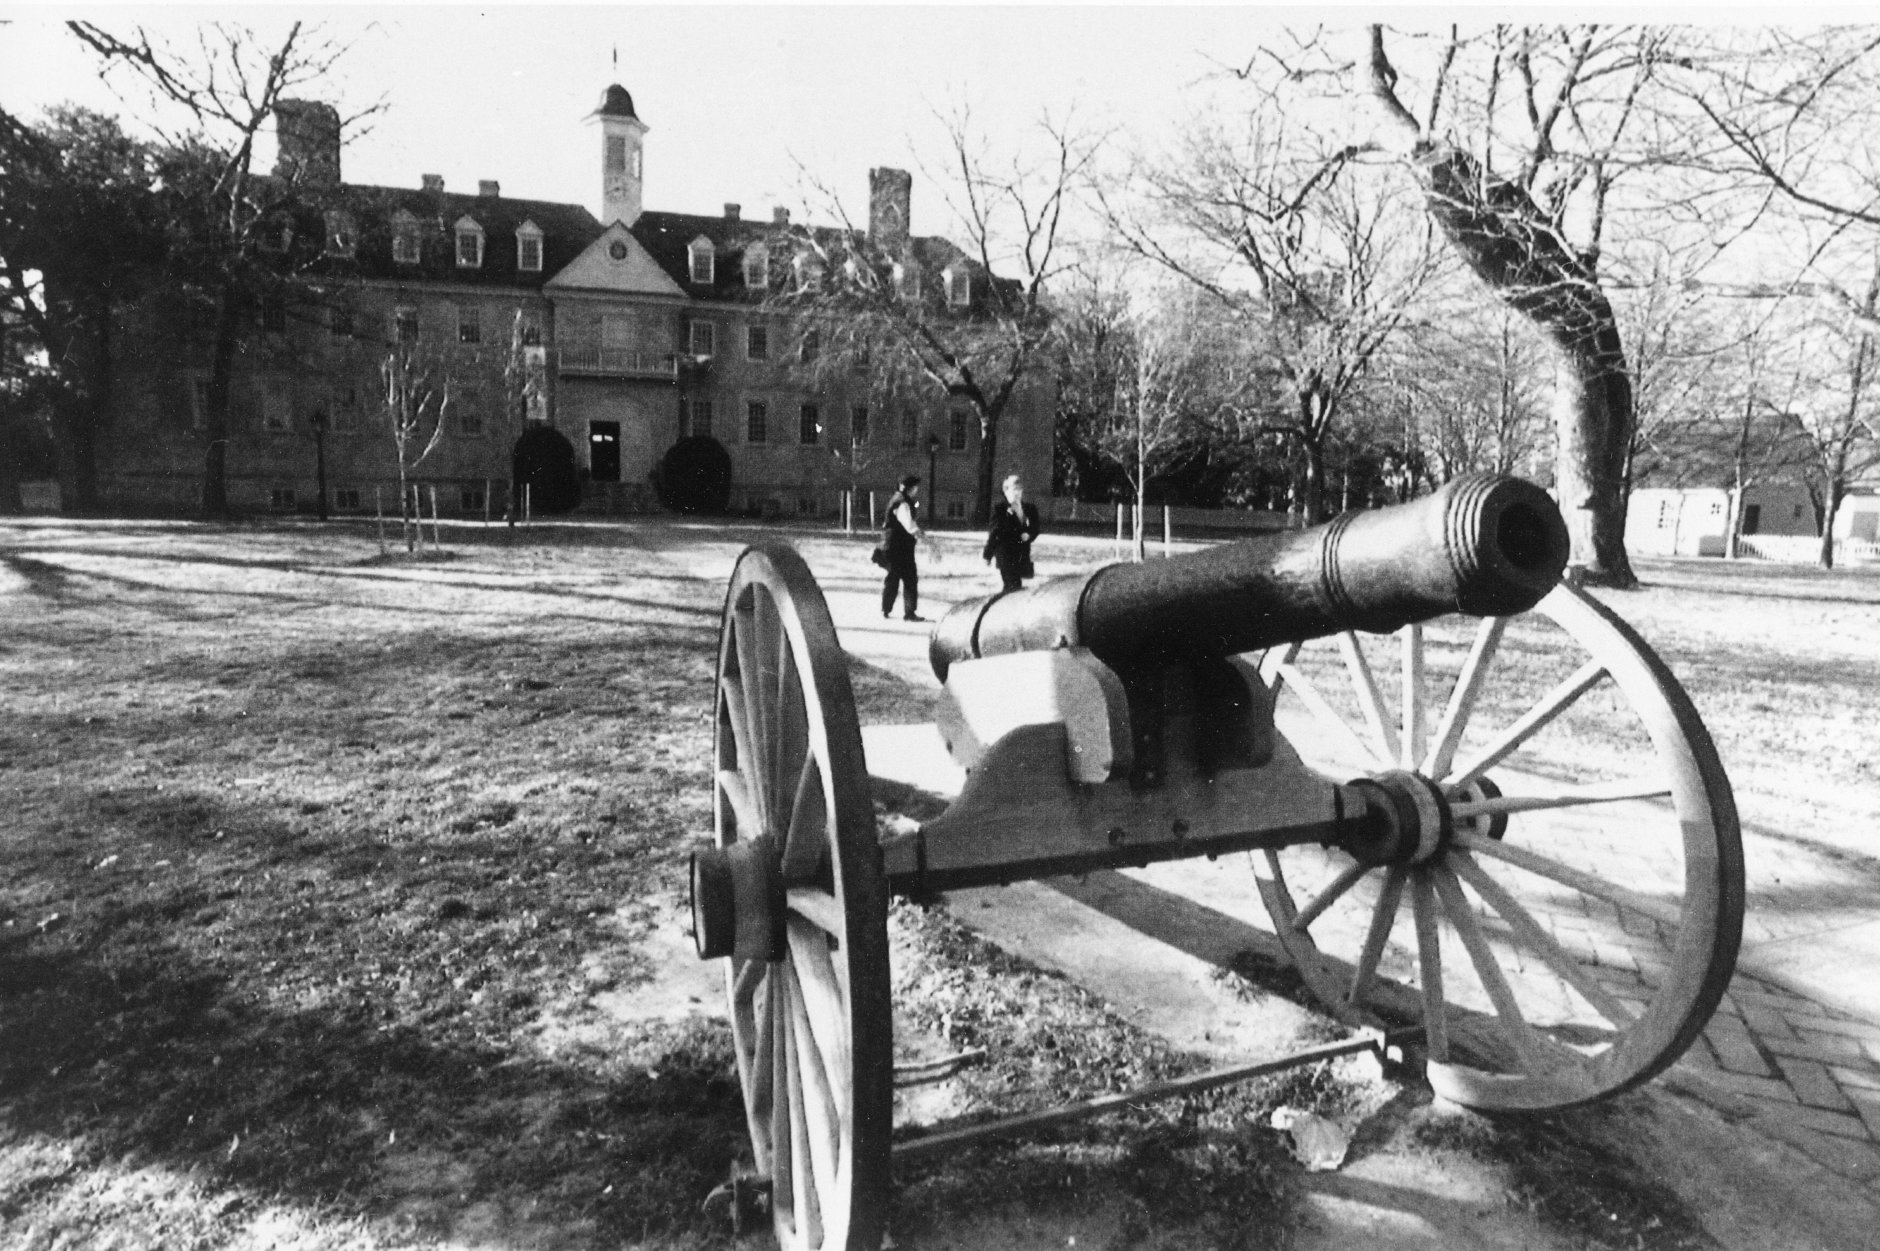 This is a general view of the Wren Building with a cannon in the front yard at the College of William and Mary in Williamsburg, Va., on Feb. 1, 1993.  The school is the nation's second oldest institution of higher education and is celebrating its 300th birthday with a royal visit.  (AP Photo/Steve Helber)